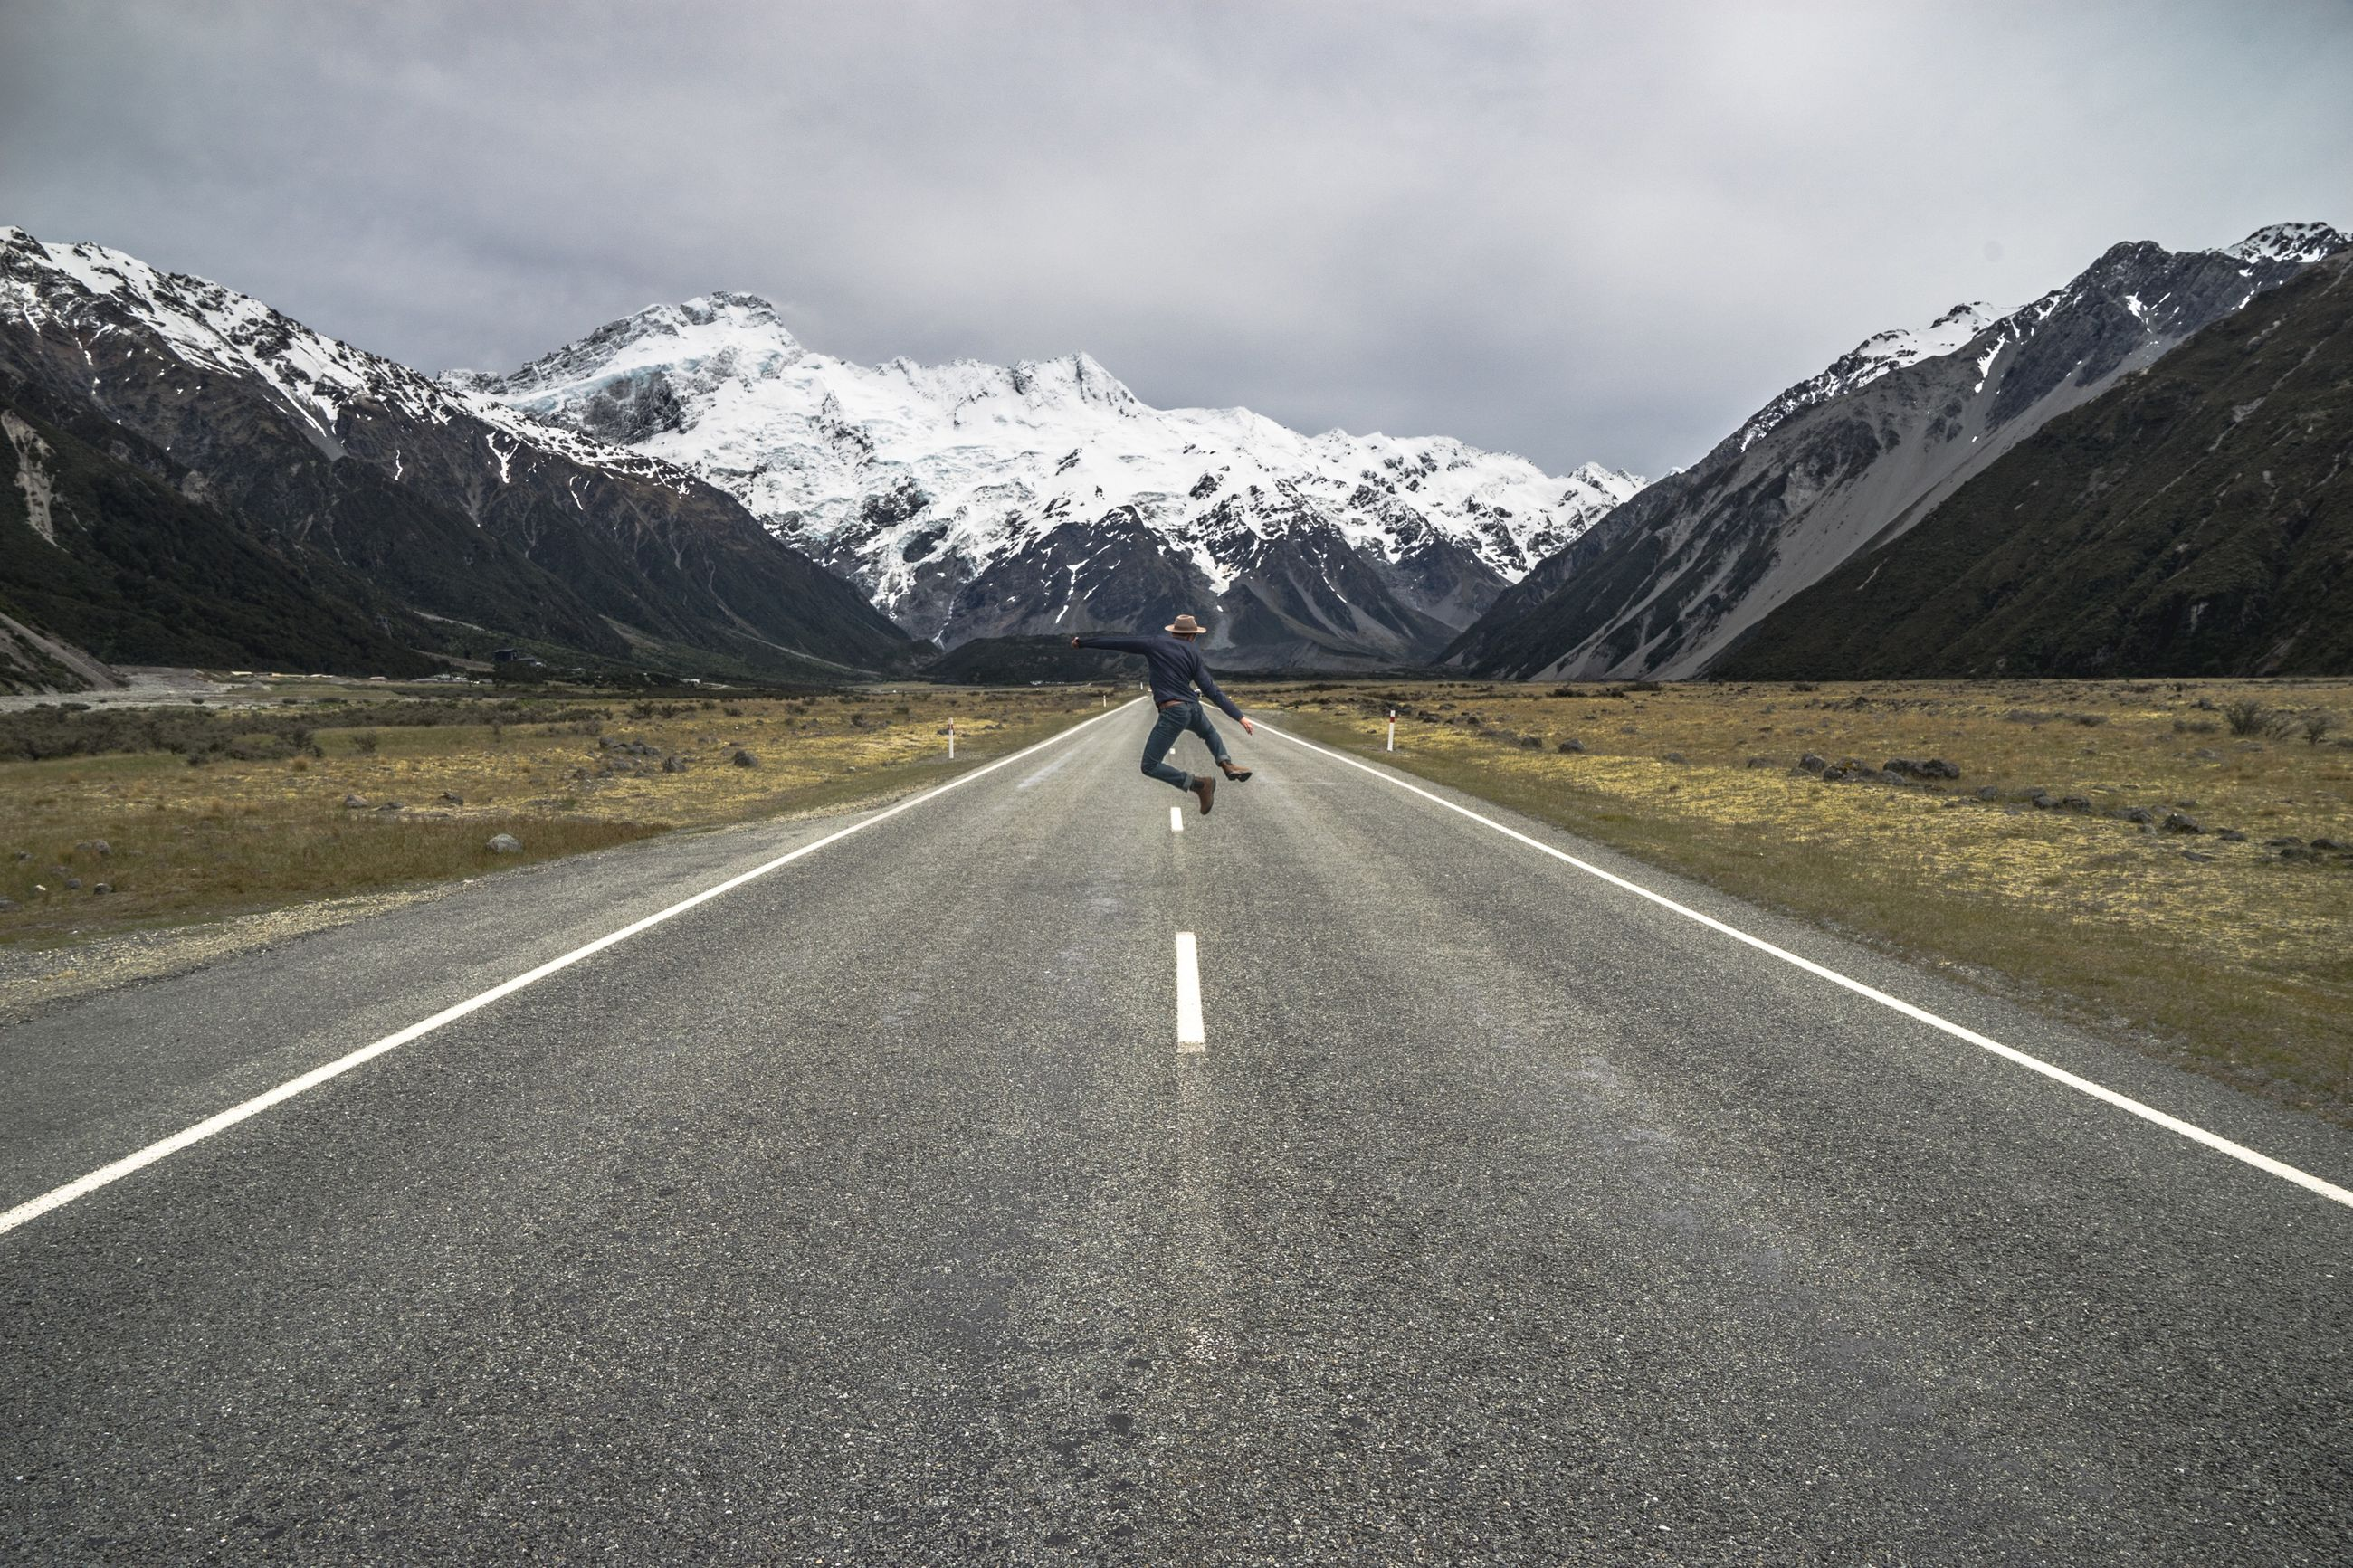 Rear view of man jumping on road against snowcapped mountains